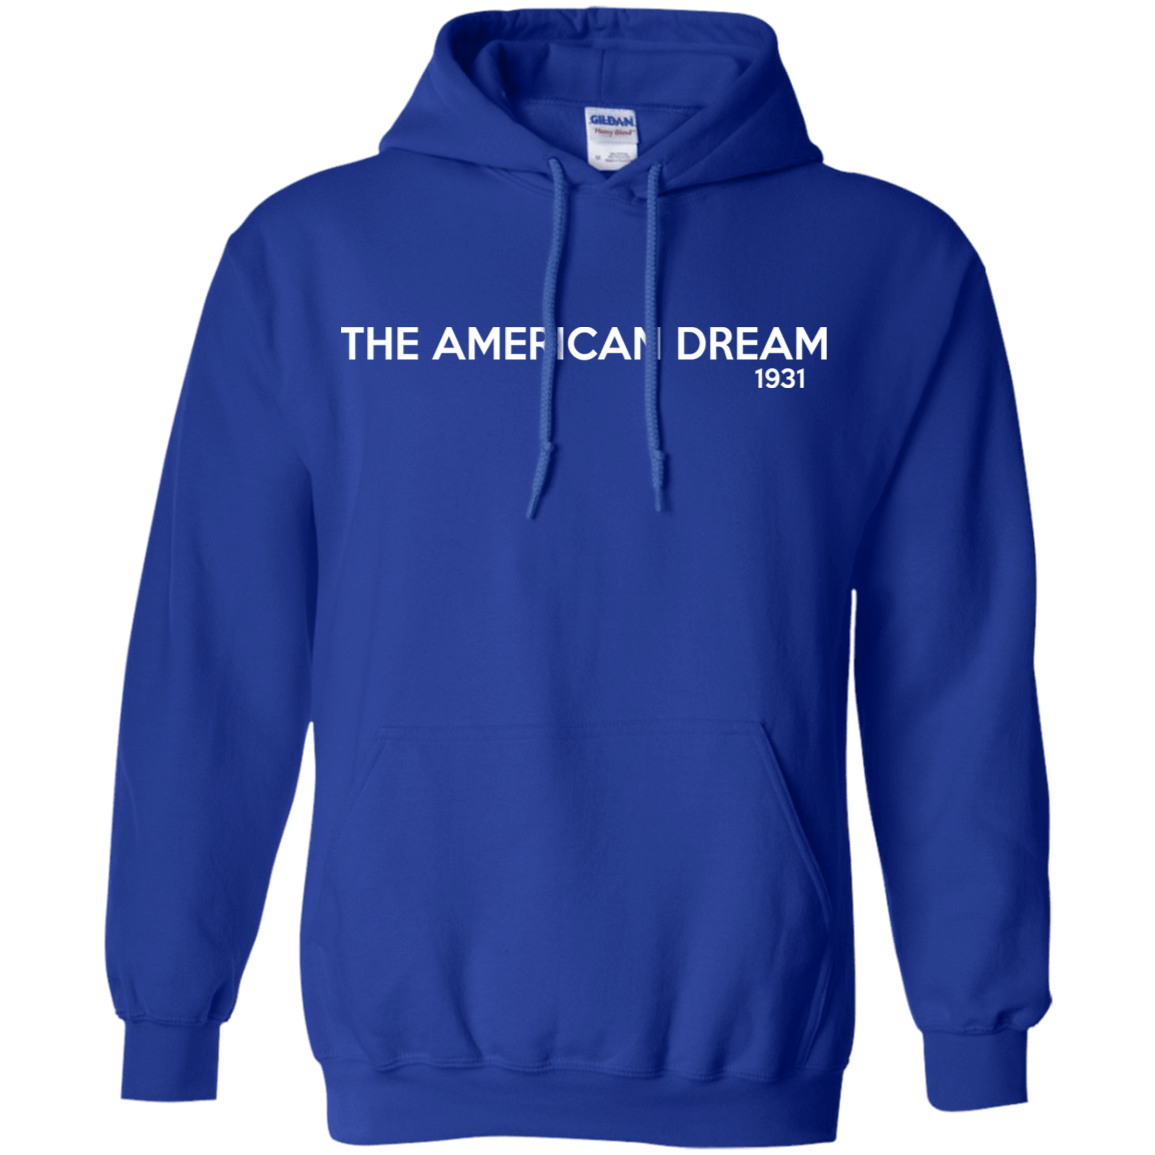 The American Dream 1931 541-4765-72086247-23175 - Tee Ript